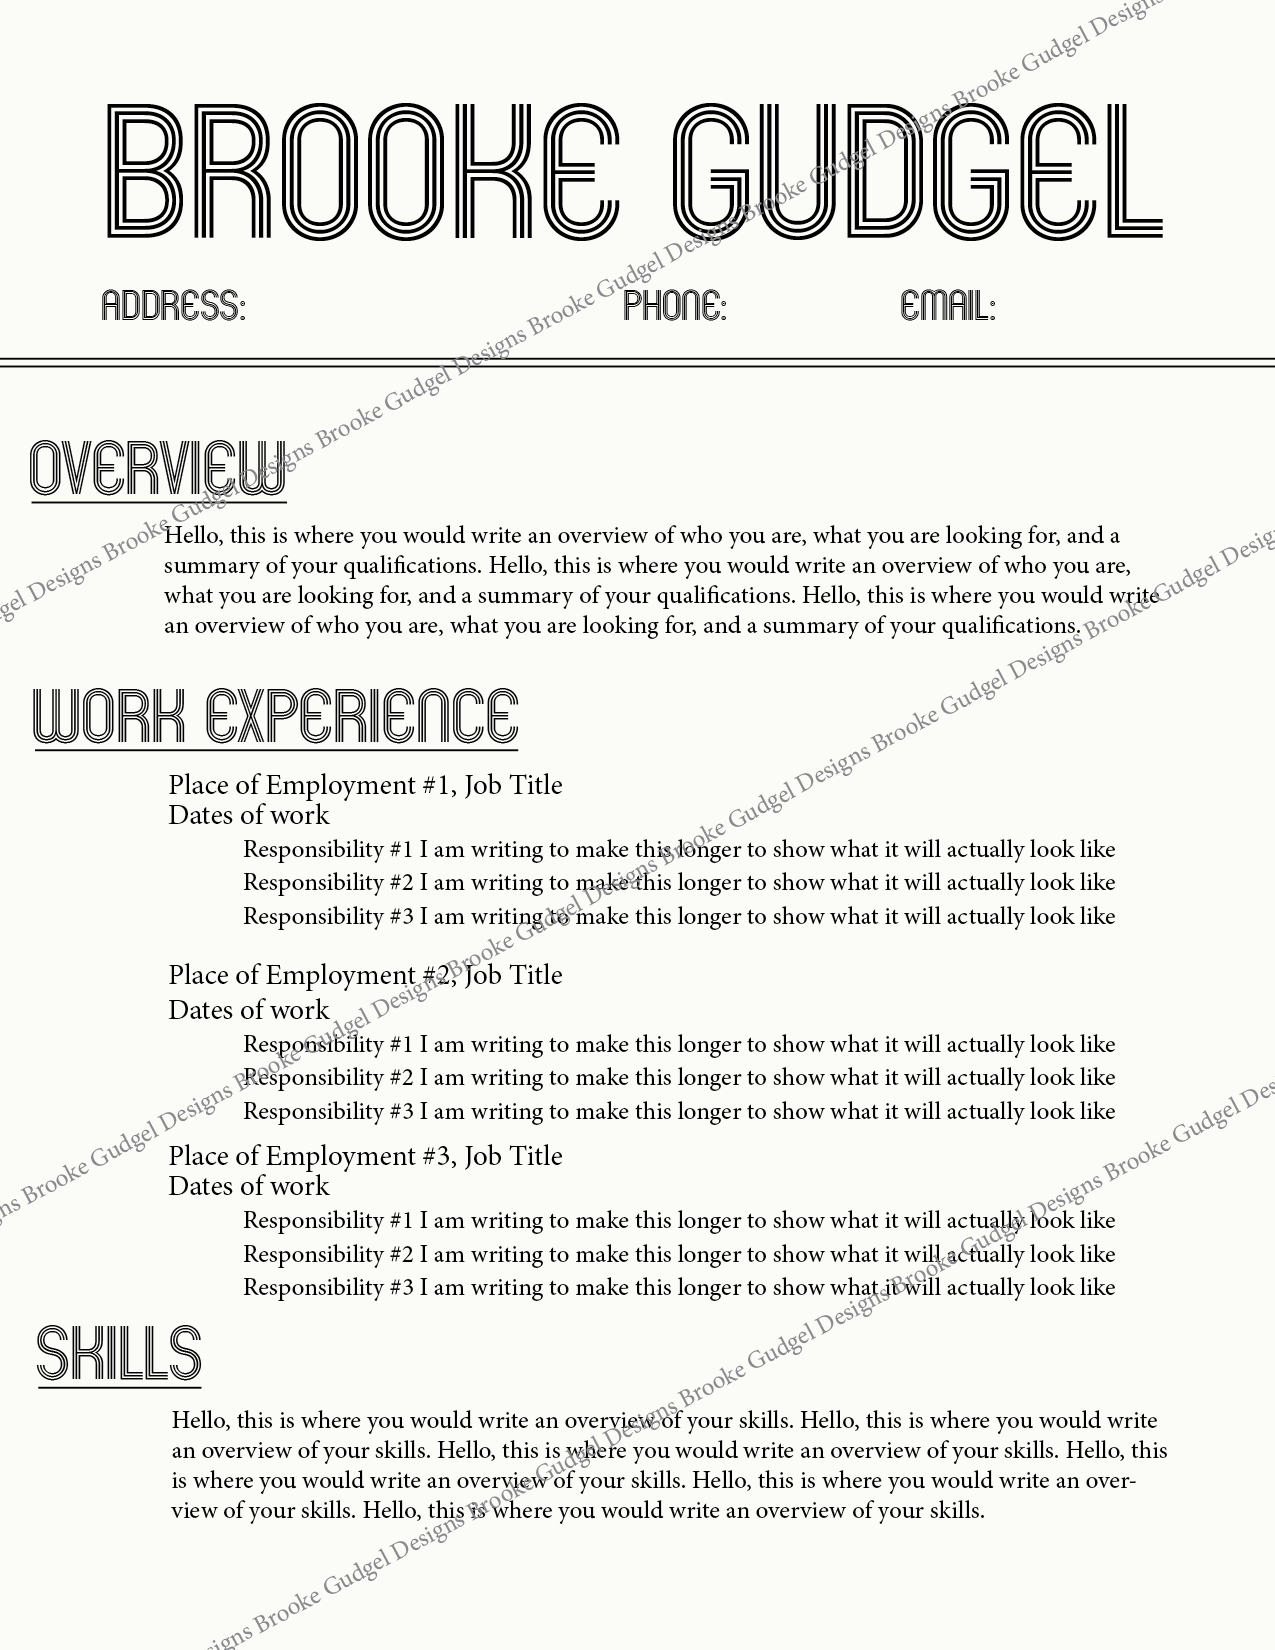 retro resume contact brookegudgelgmailcom rush sorority resume - Sorority Resume Template